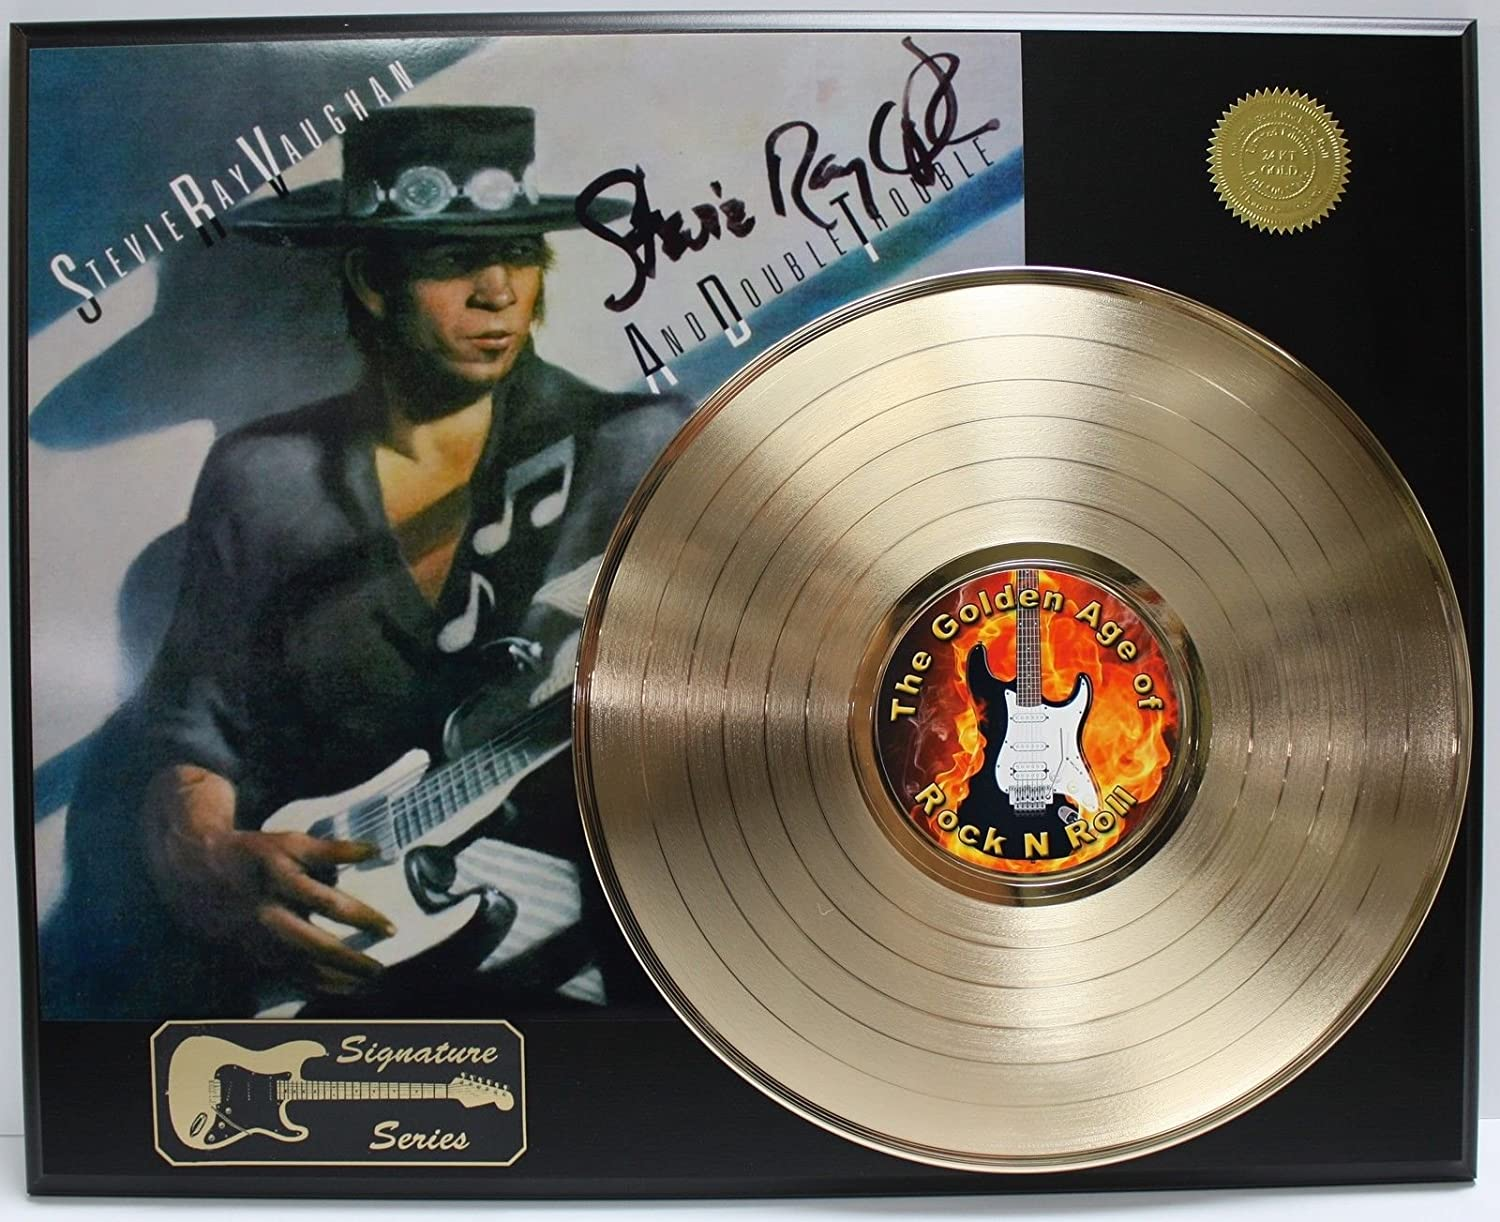 Stevie Ray Vaughan Gold Lp Ltd Edition Signature Record Display